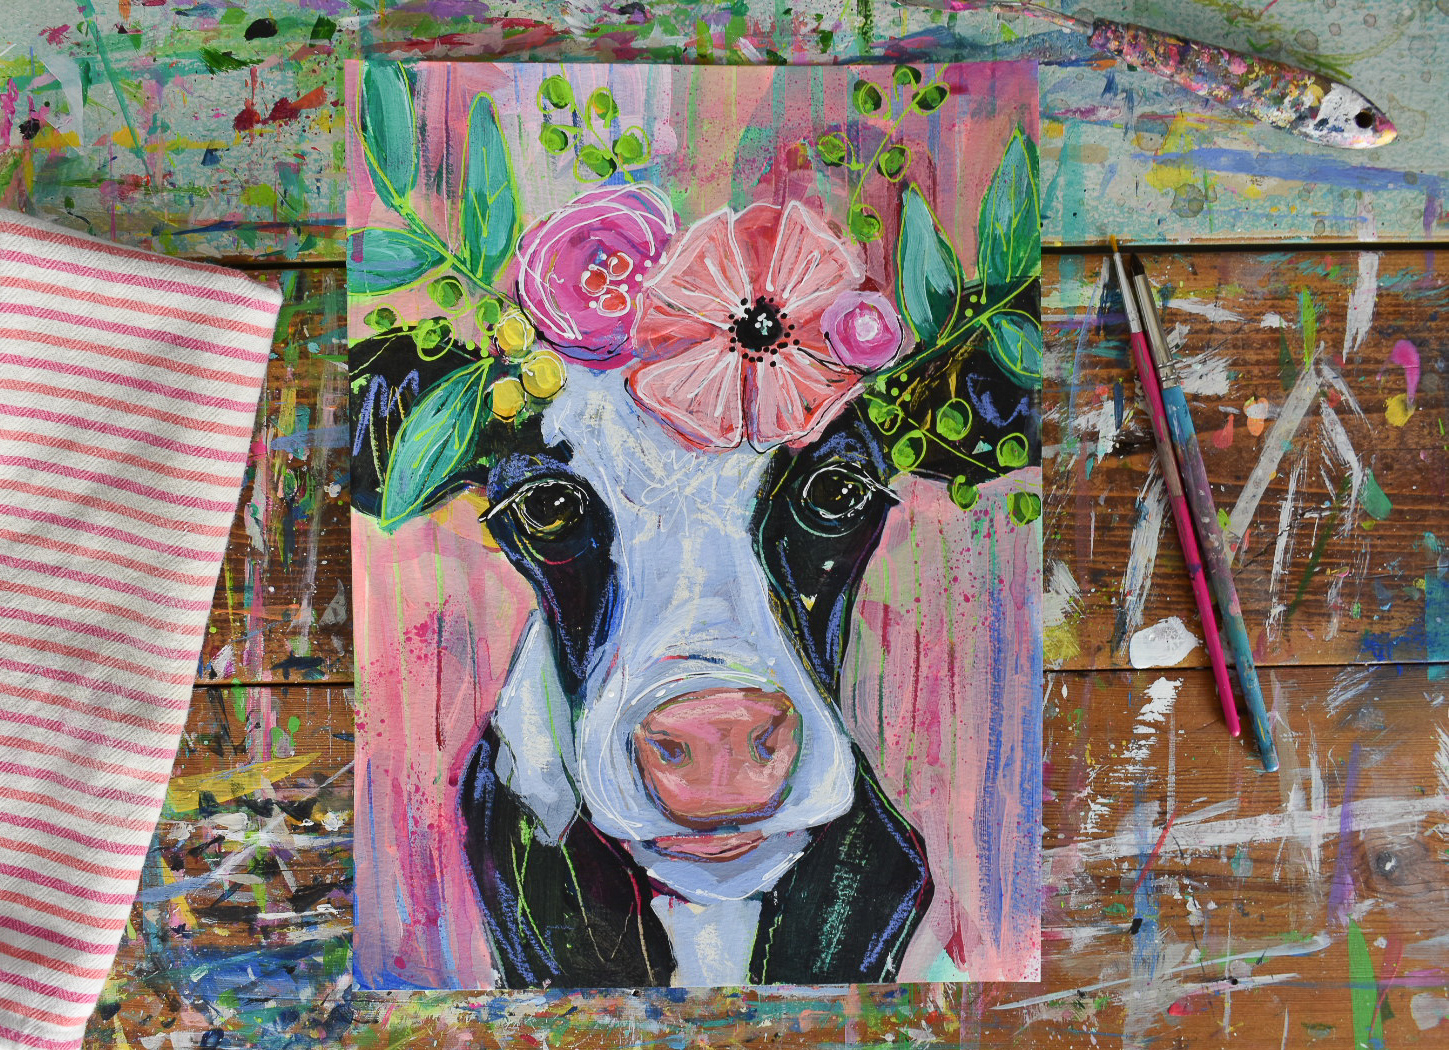 boho_cow_painting_colorfulart_farmanimal_flowercrown_4.jpg